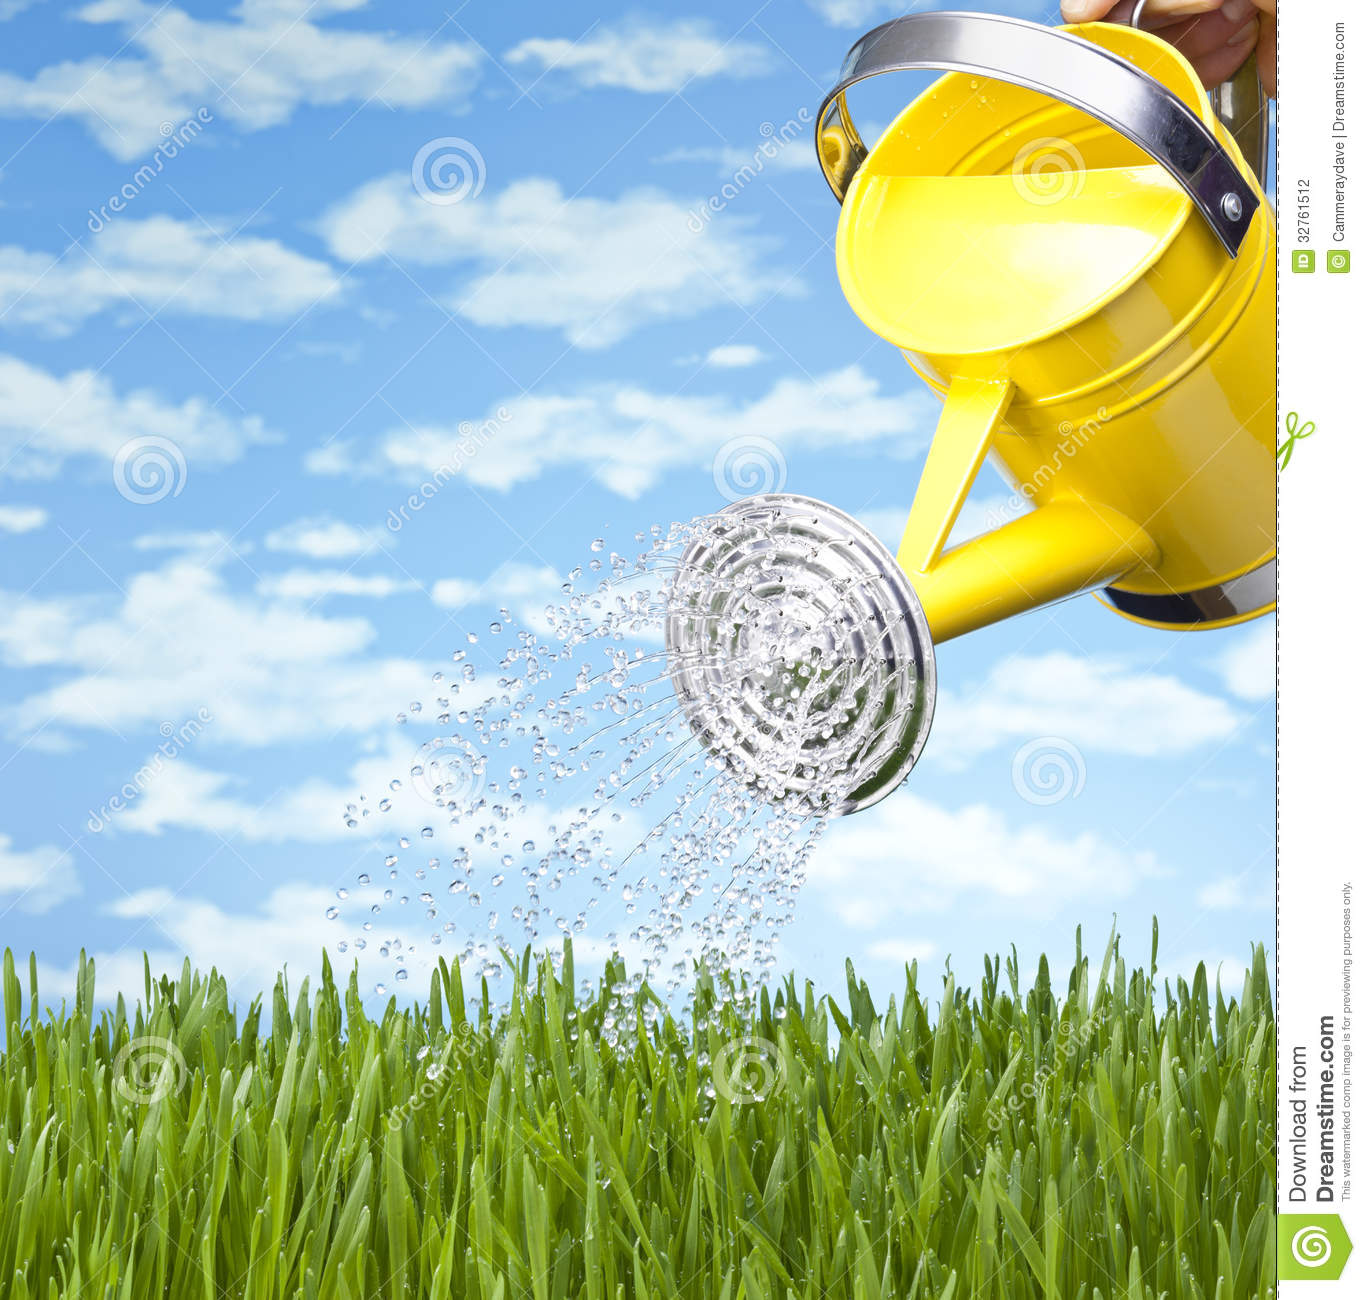 Yellow Watering Can Sprinkling Water On A Grass Lawn With A Blue Sky